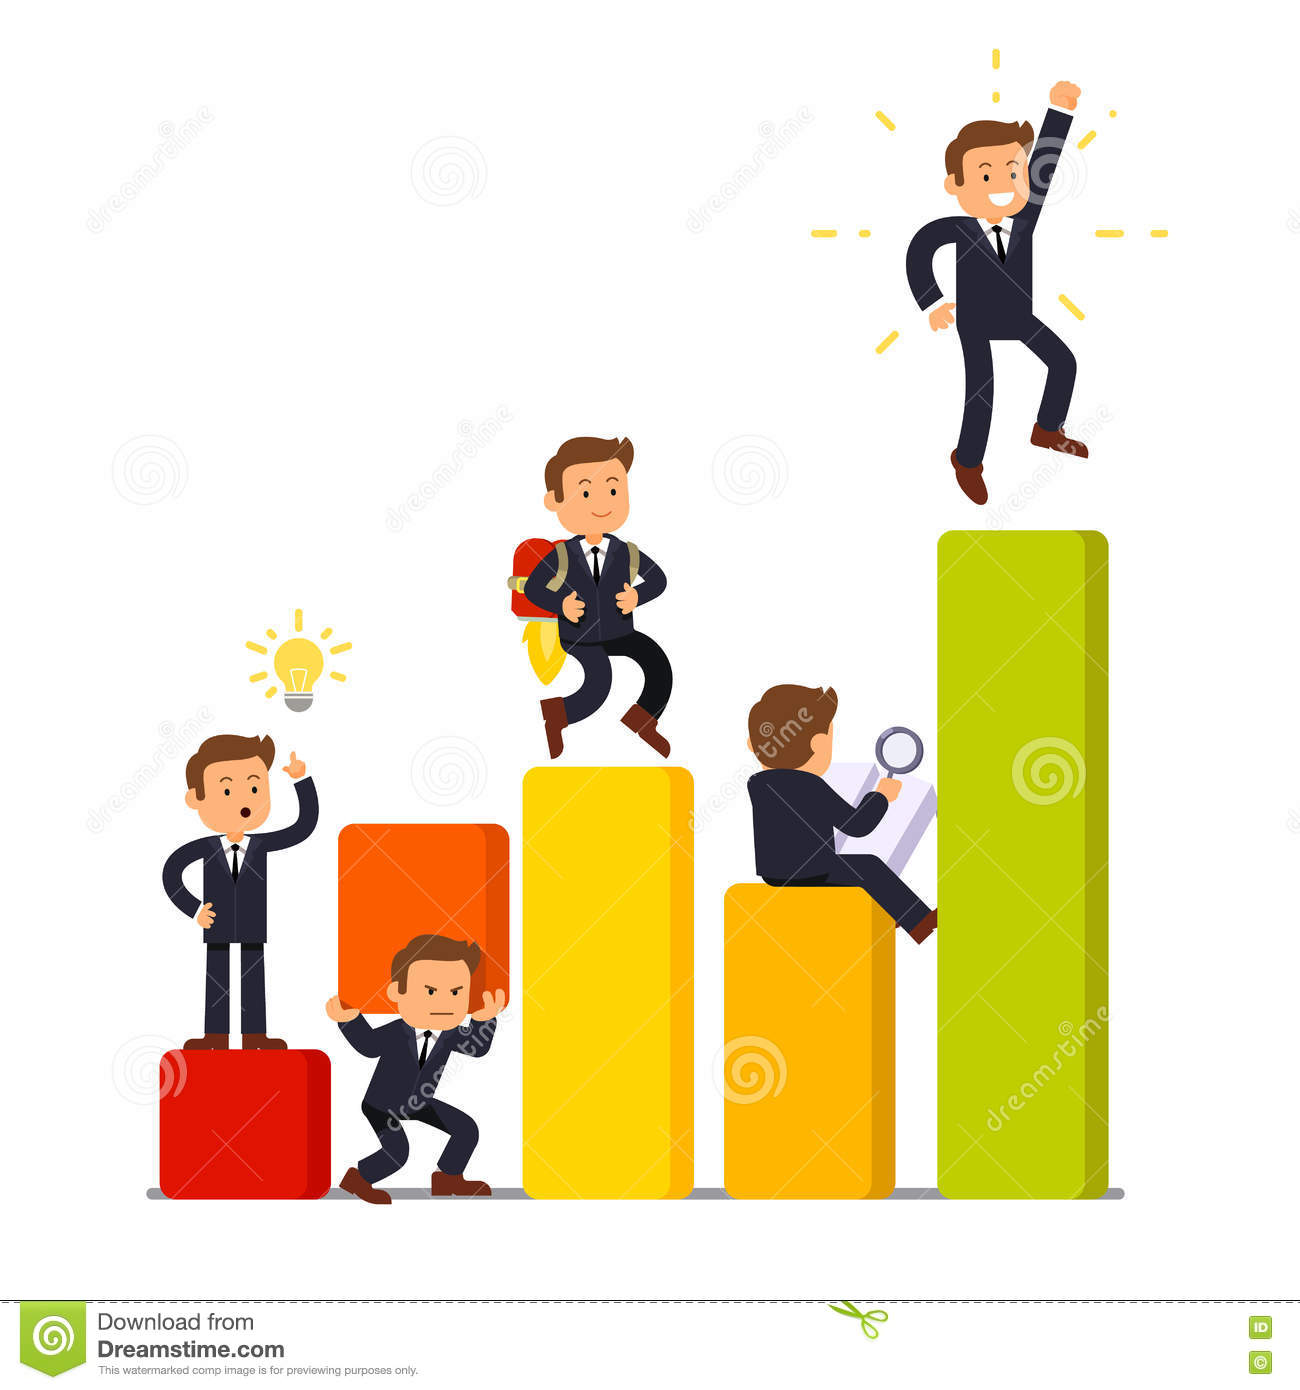 Stages Of Business Development And Growth Stock Vector.